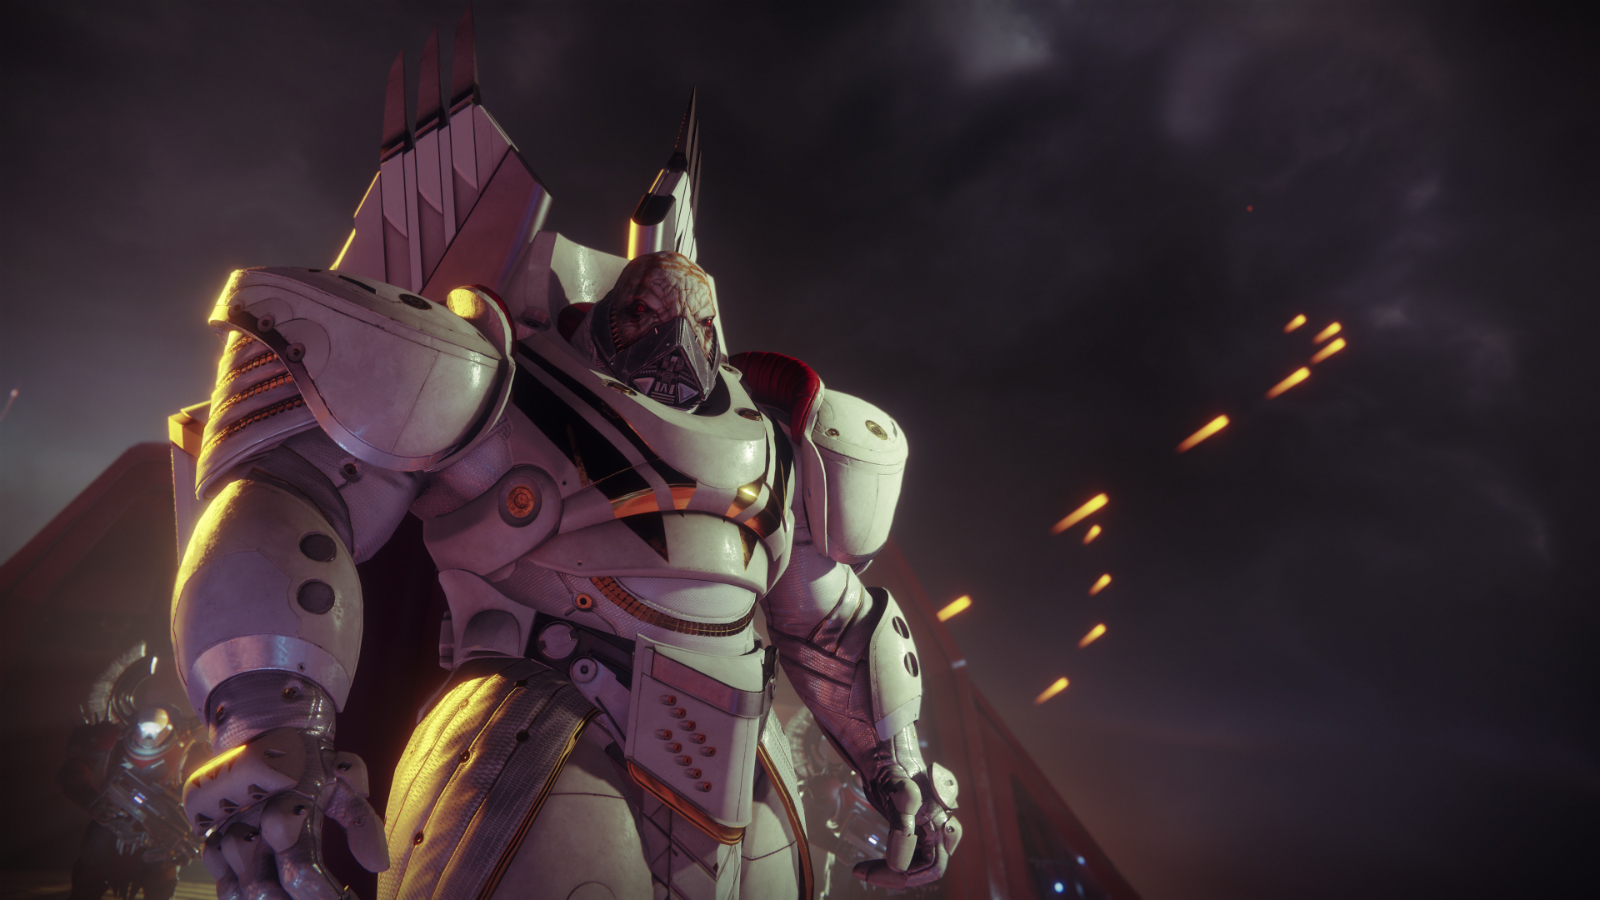 Screenshot of Ghaul, a hulking alien warrior in ornate, white armor.